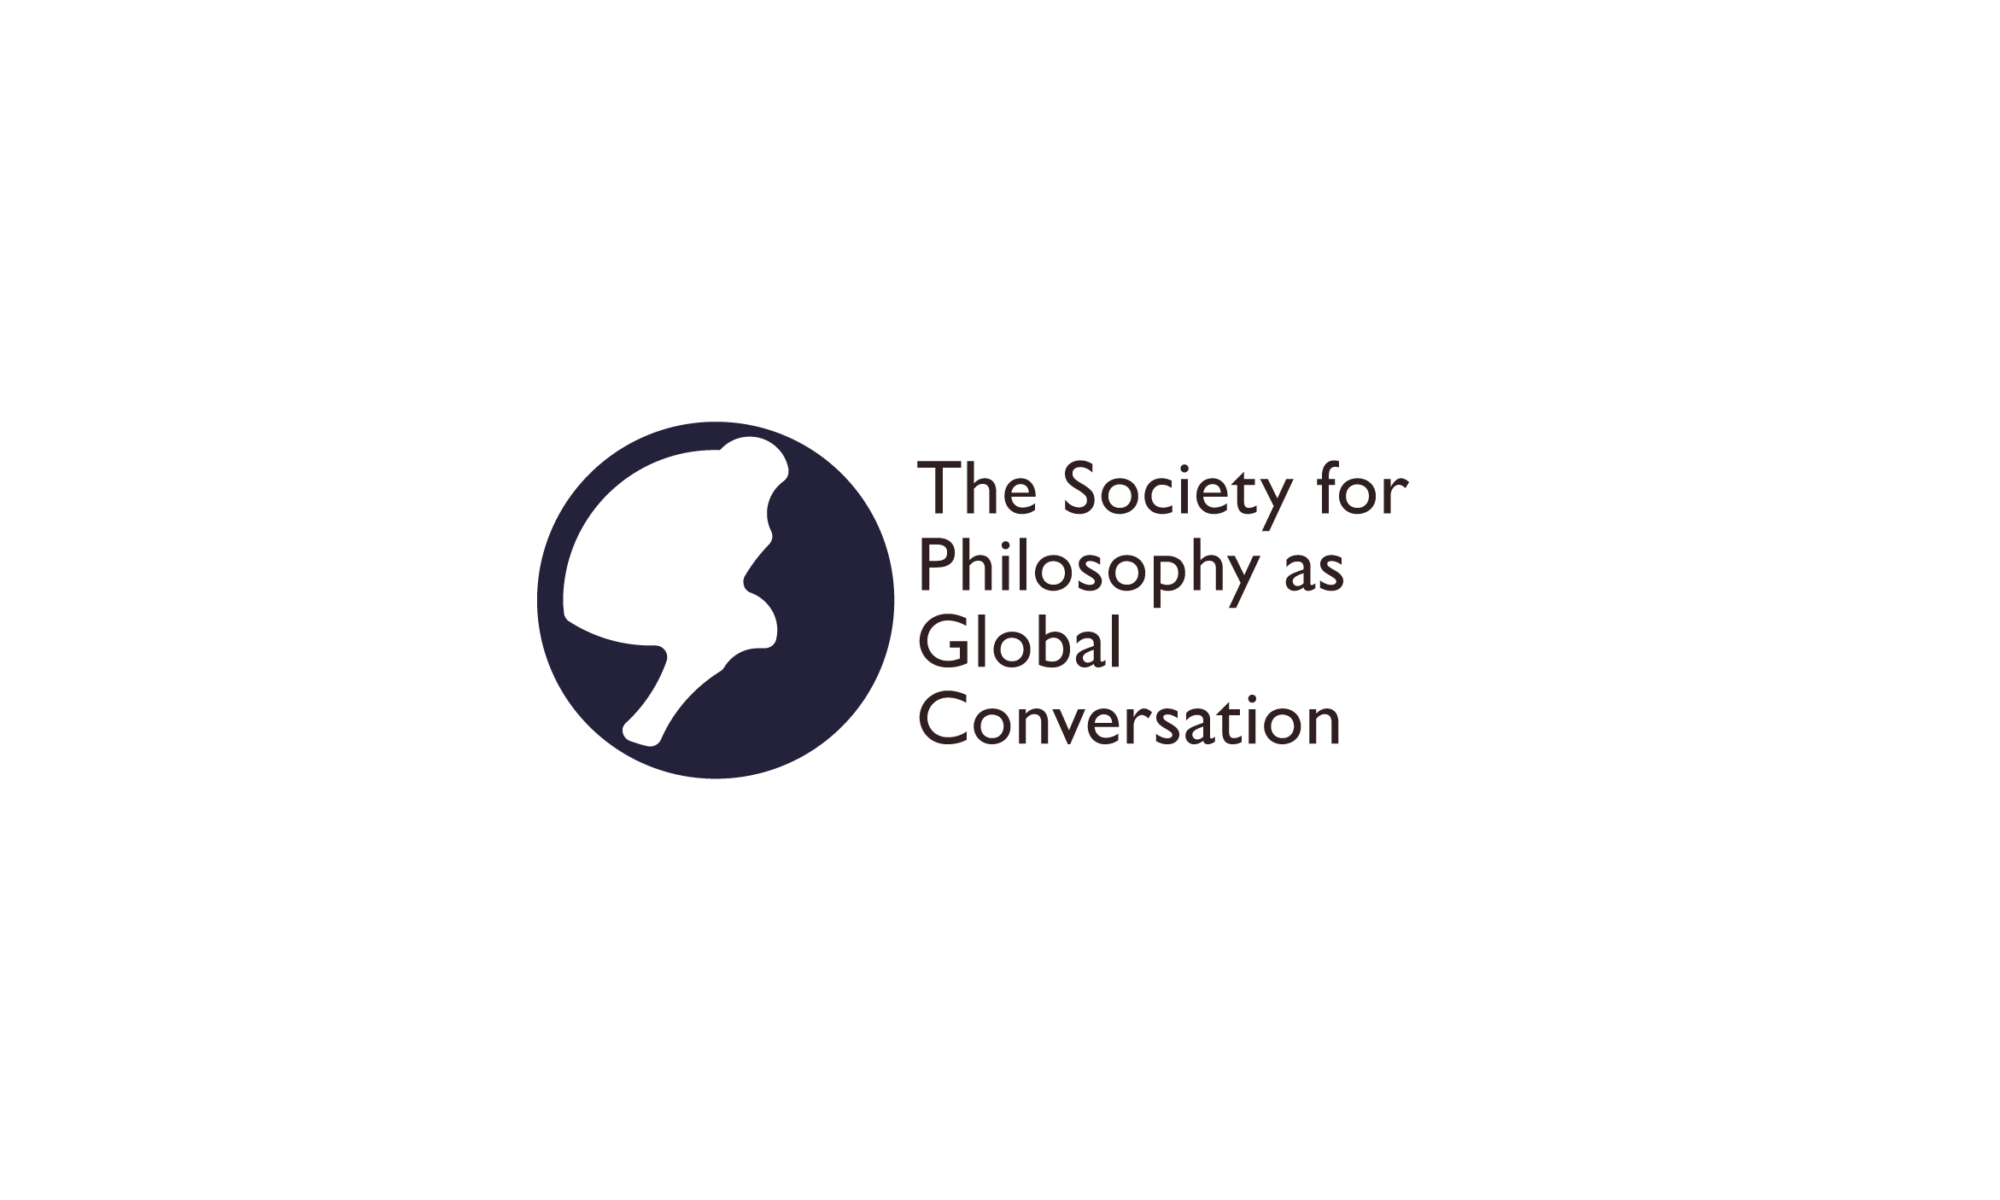 Society for Philosophy as Global Conversation